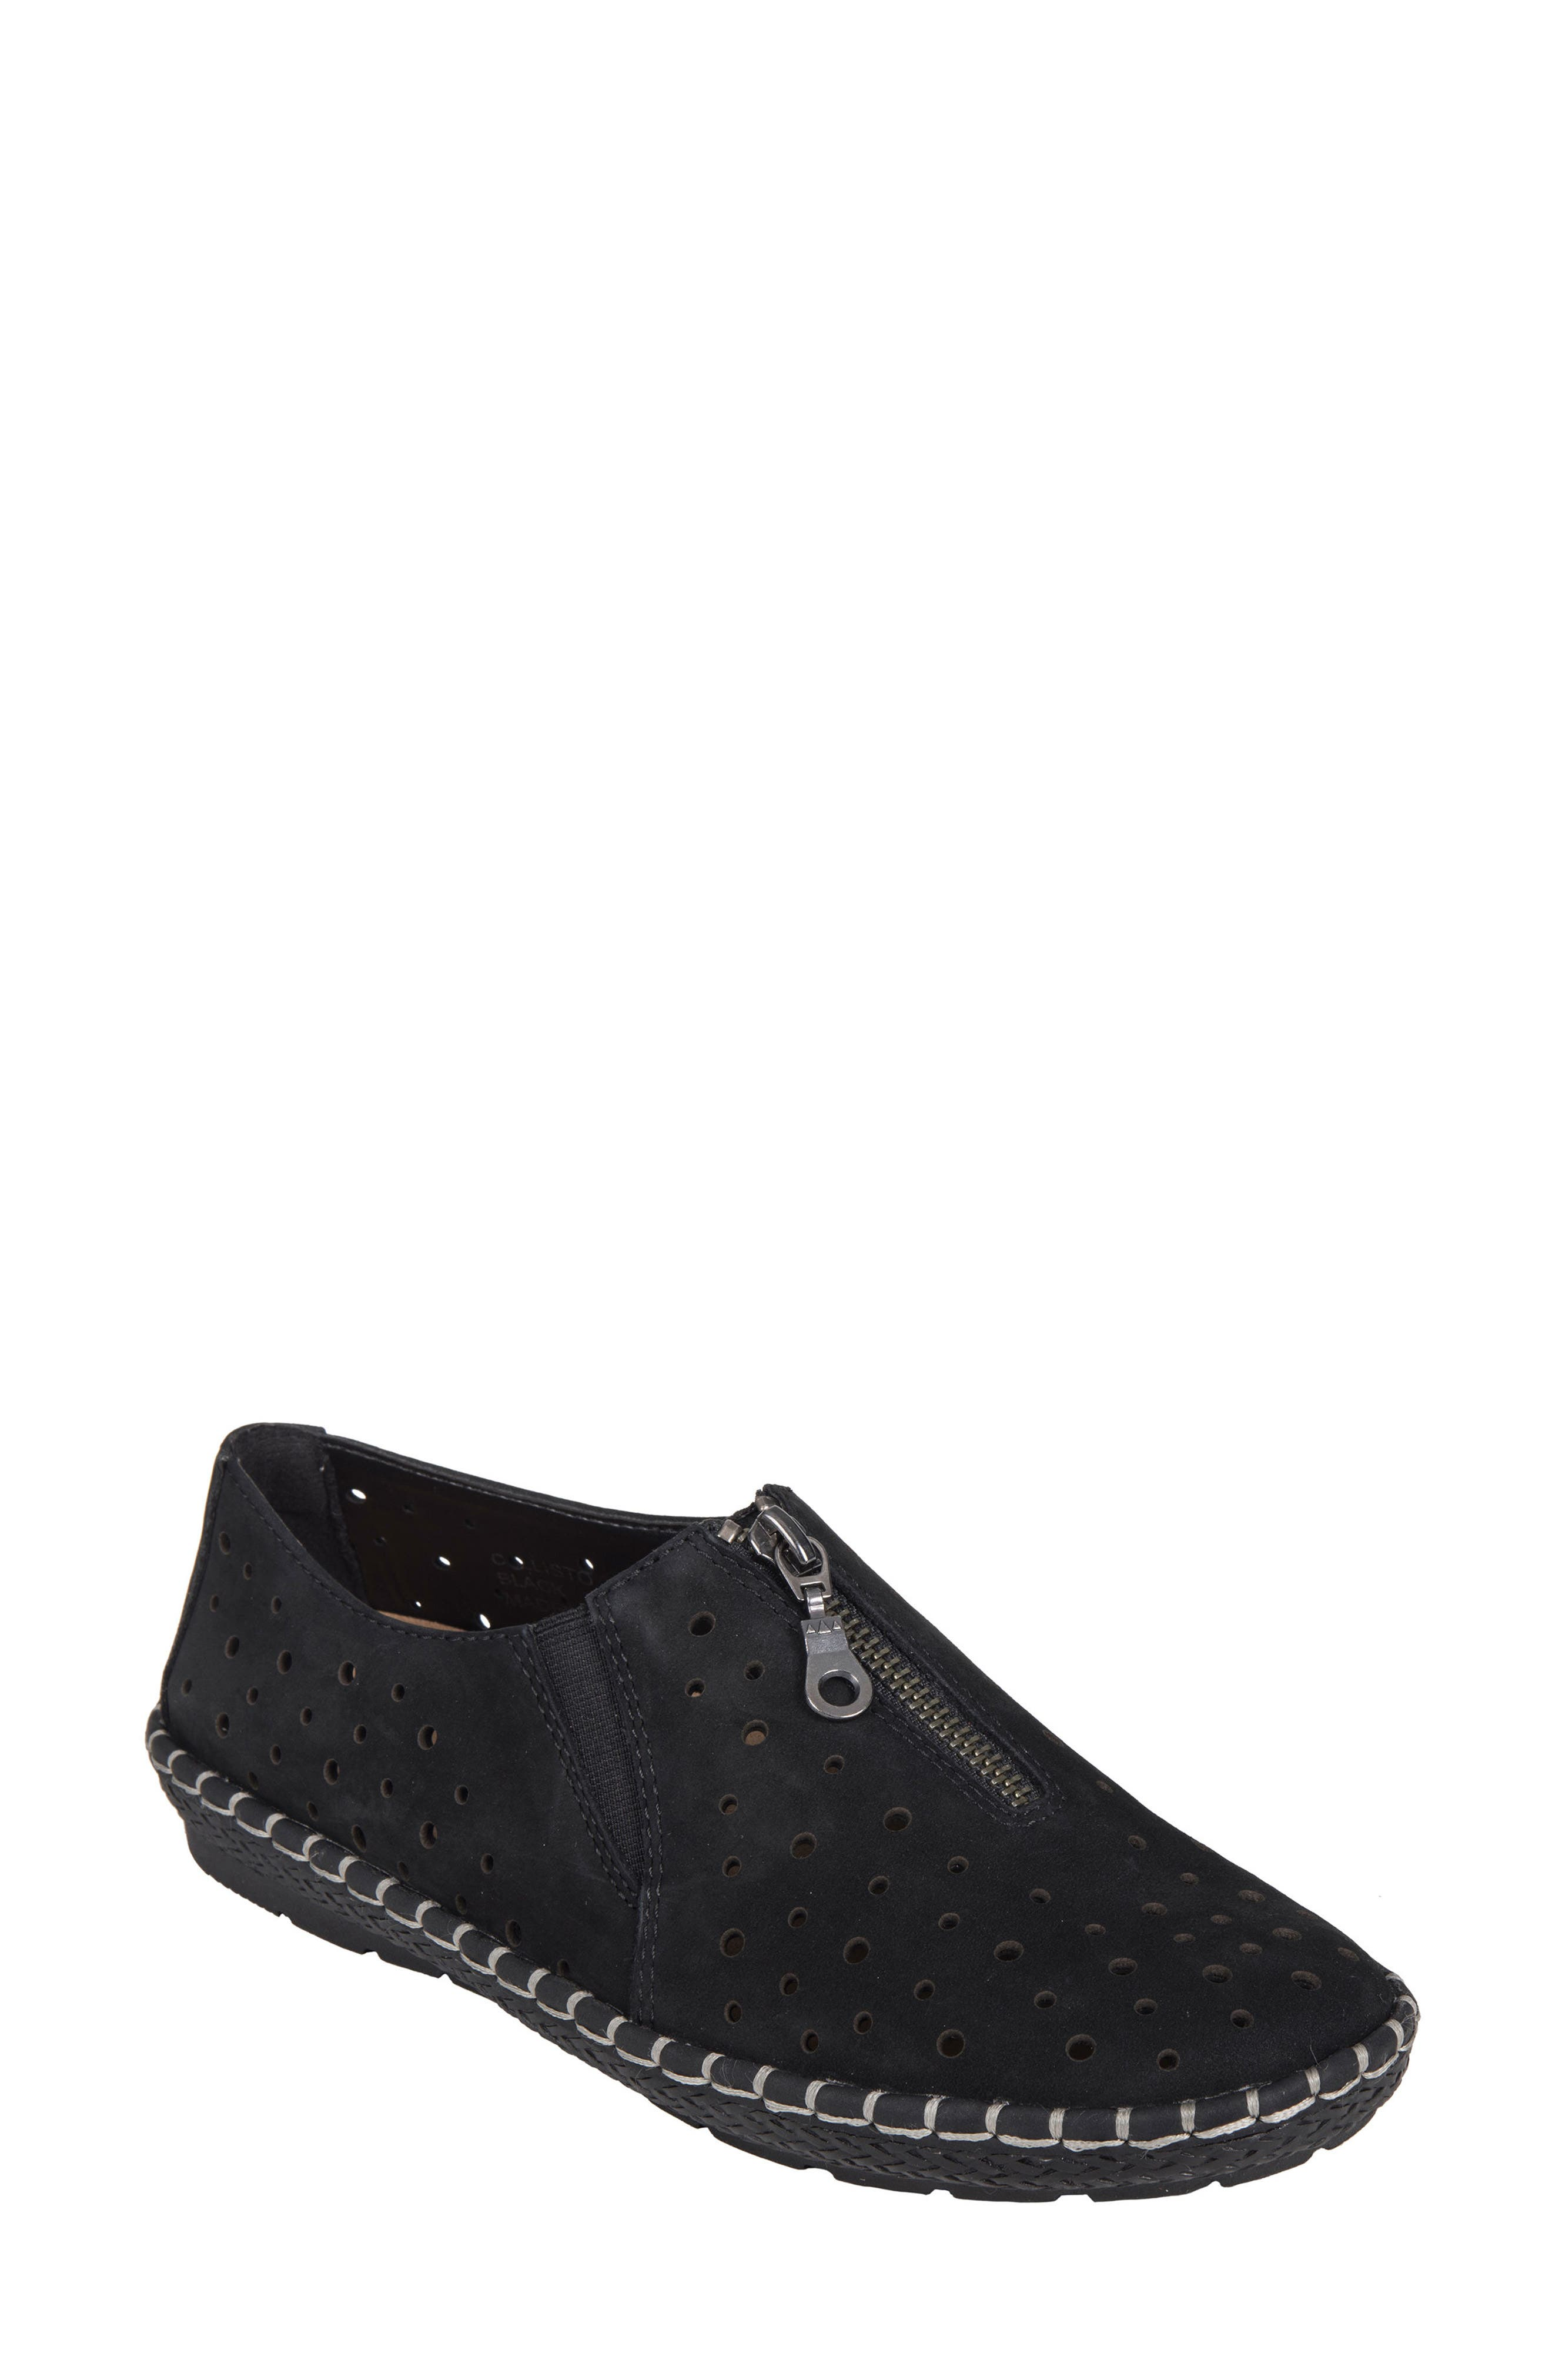 Callisto Perforated Zip Moccasin,                         Main,                         color, 001